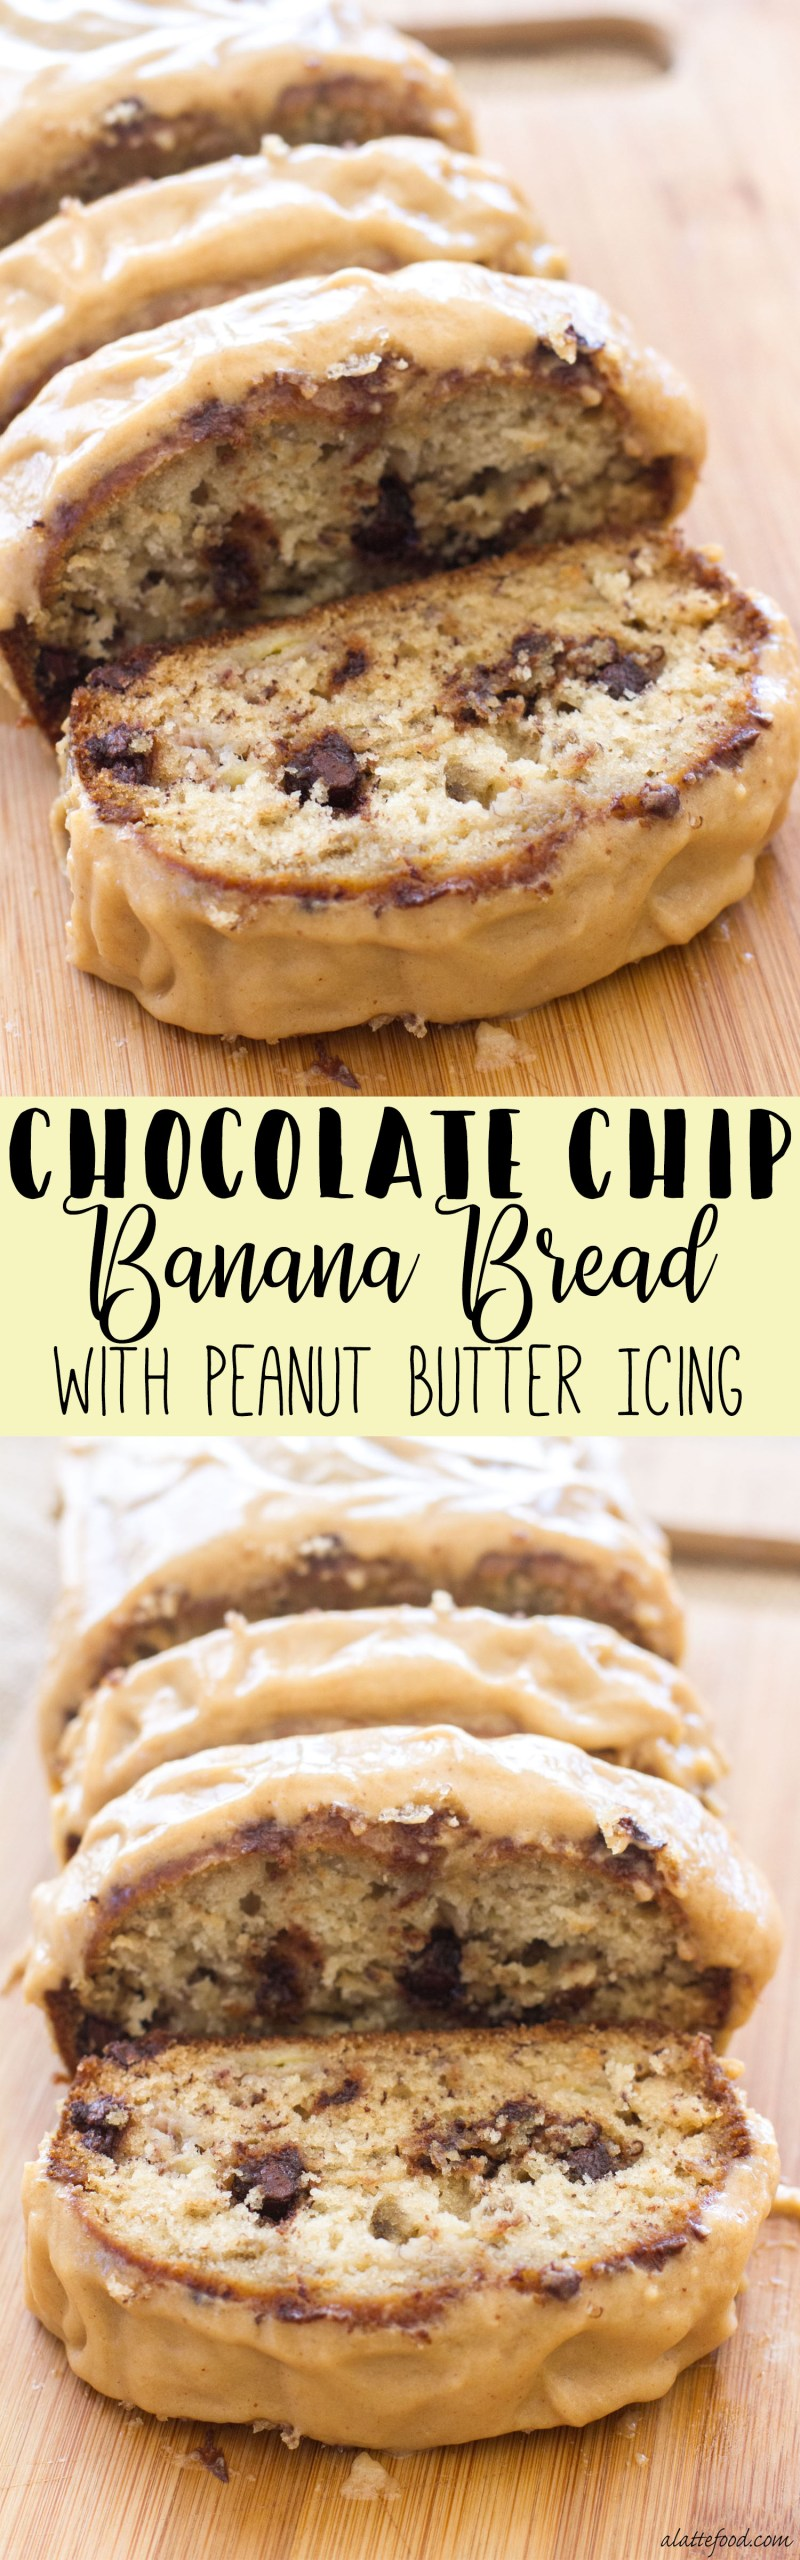 This classic banana bread is filled with sweet chocolate chips and topped with the best peanut butter icing! The peanut butter glaze and the melty chocolate chips make this Chocolate Chip Banana Bread recipe absolutely to die for! You're sure to love this quick and easy snack or dessert! homemade banana bread, best banana bread recipe